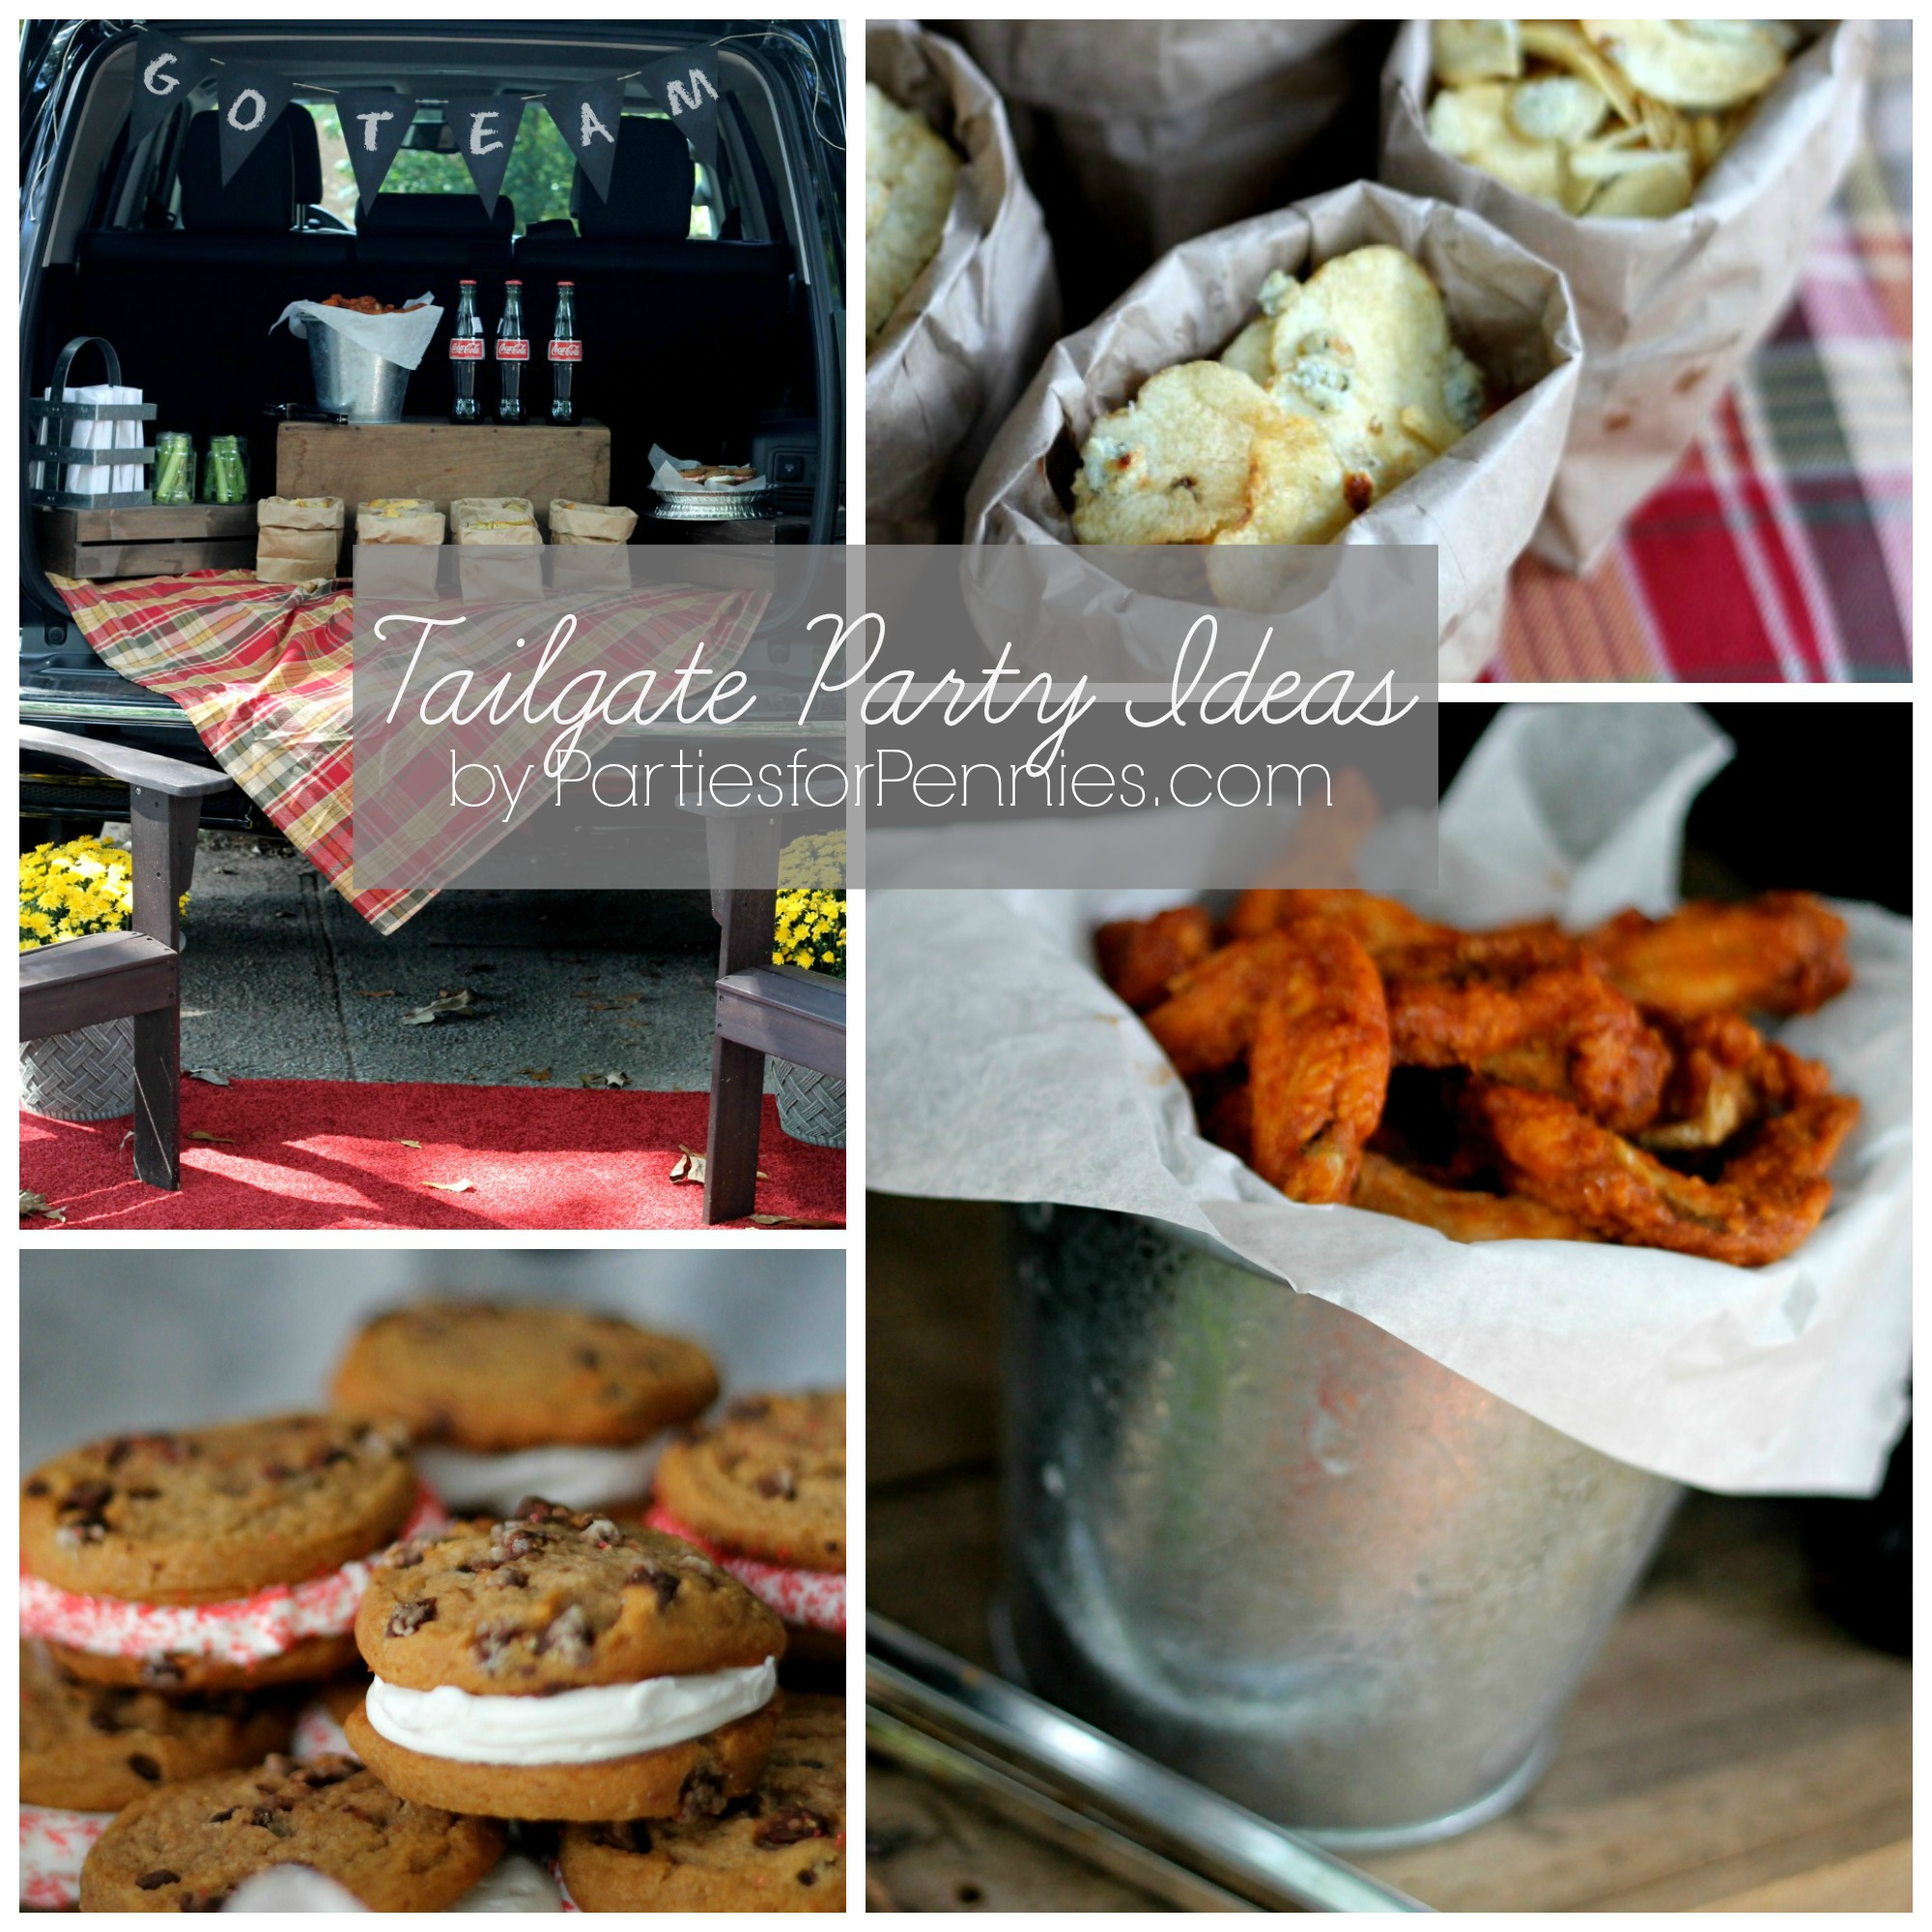 Tailgate Party Ideas by PartiesforPennies.com Collage